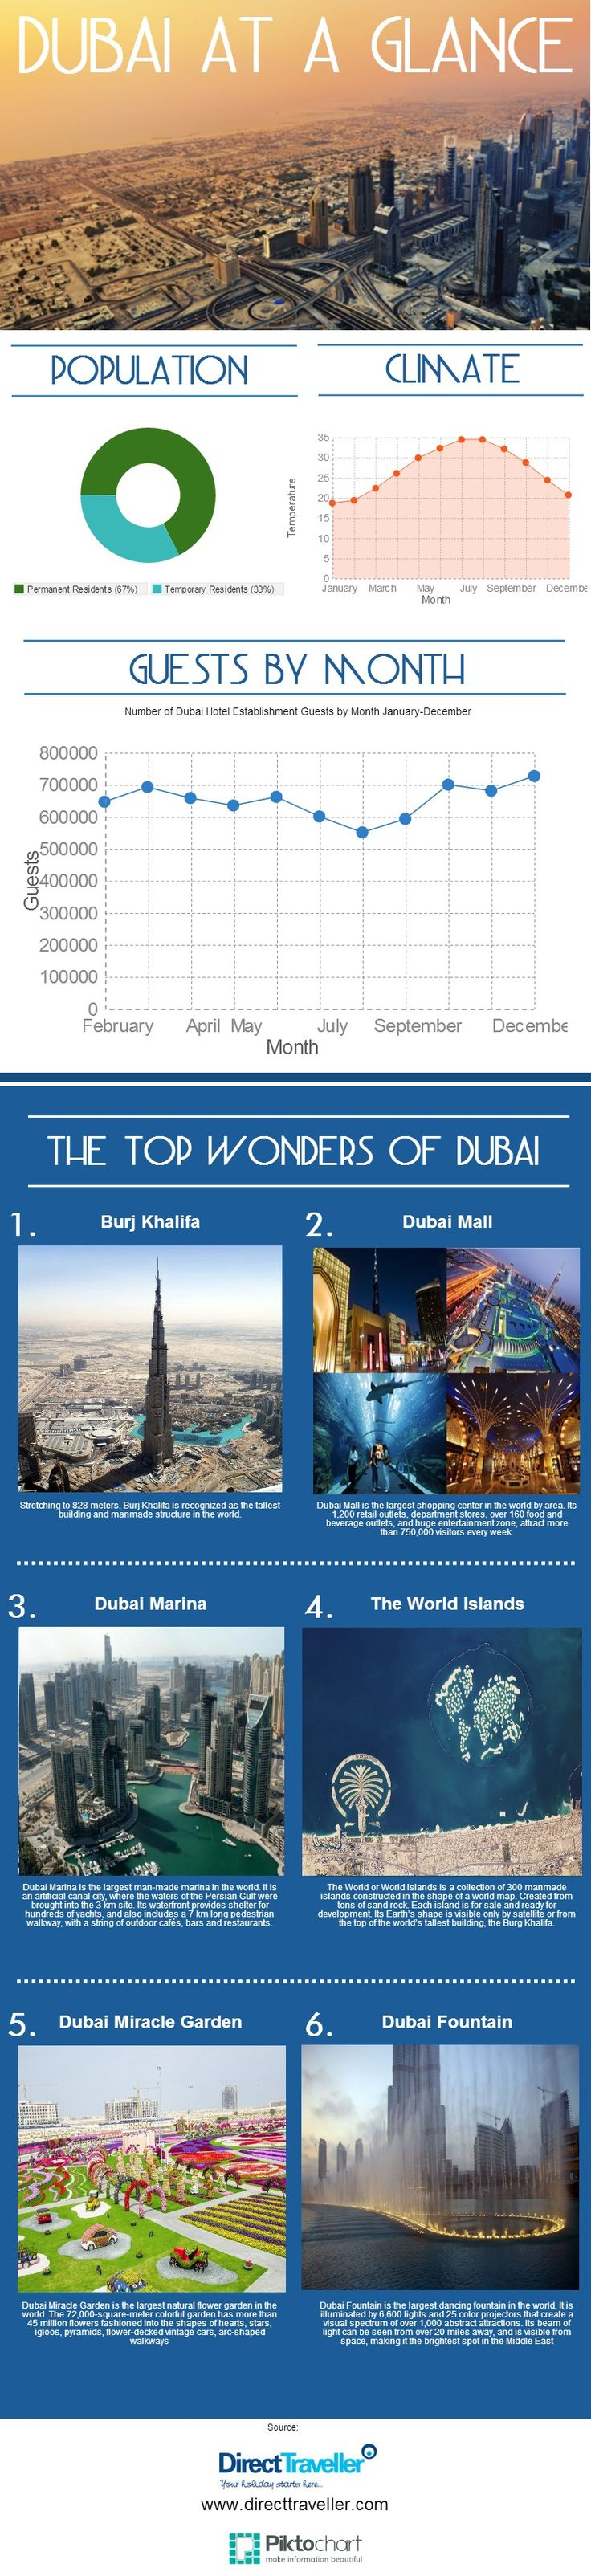 Best Travel Infographics Images On Pinterest World - The 10 most visited cities in the us by foreign travelers